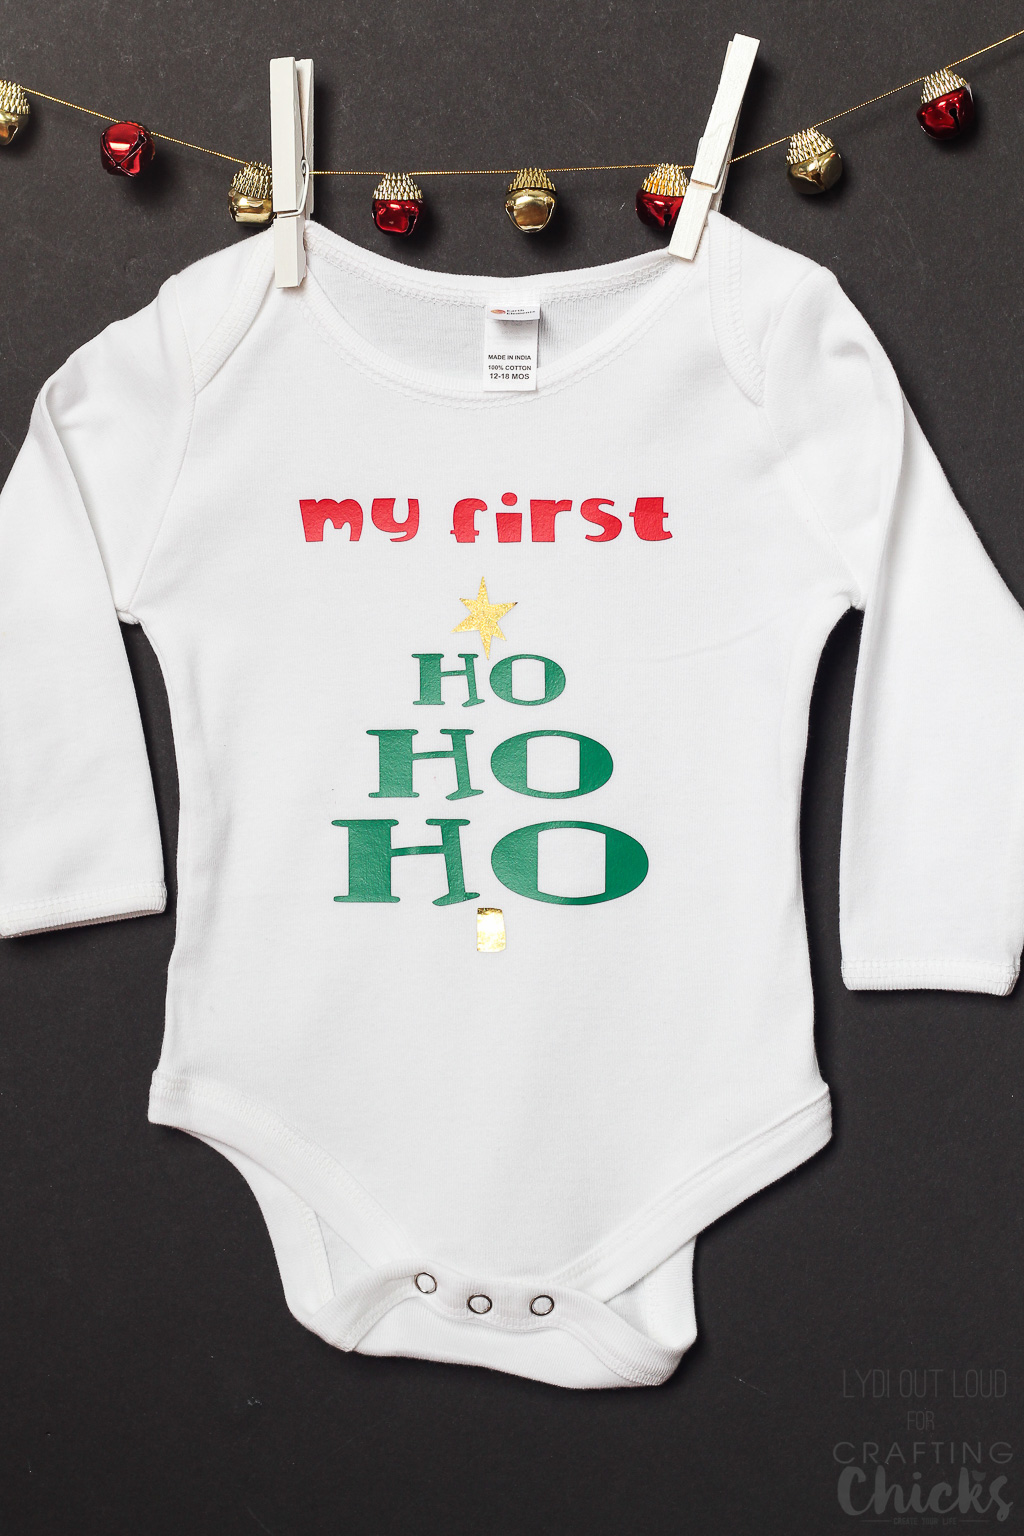 Baby's First Christmas iron-on onesie #babysfirstchristmas #ironon #diychristmasgifts #christmasgiftideas